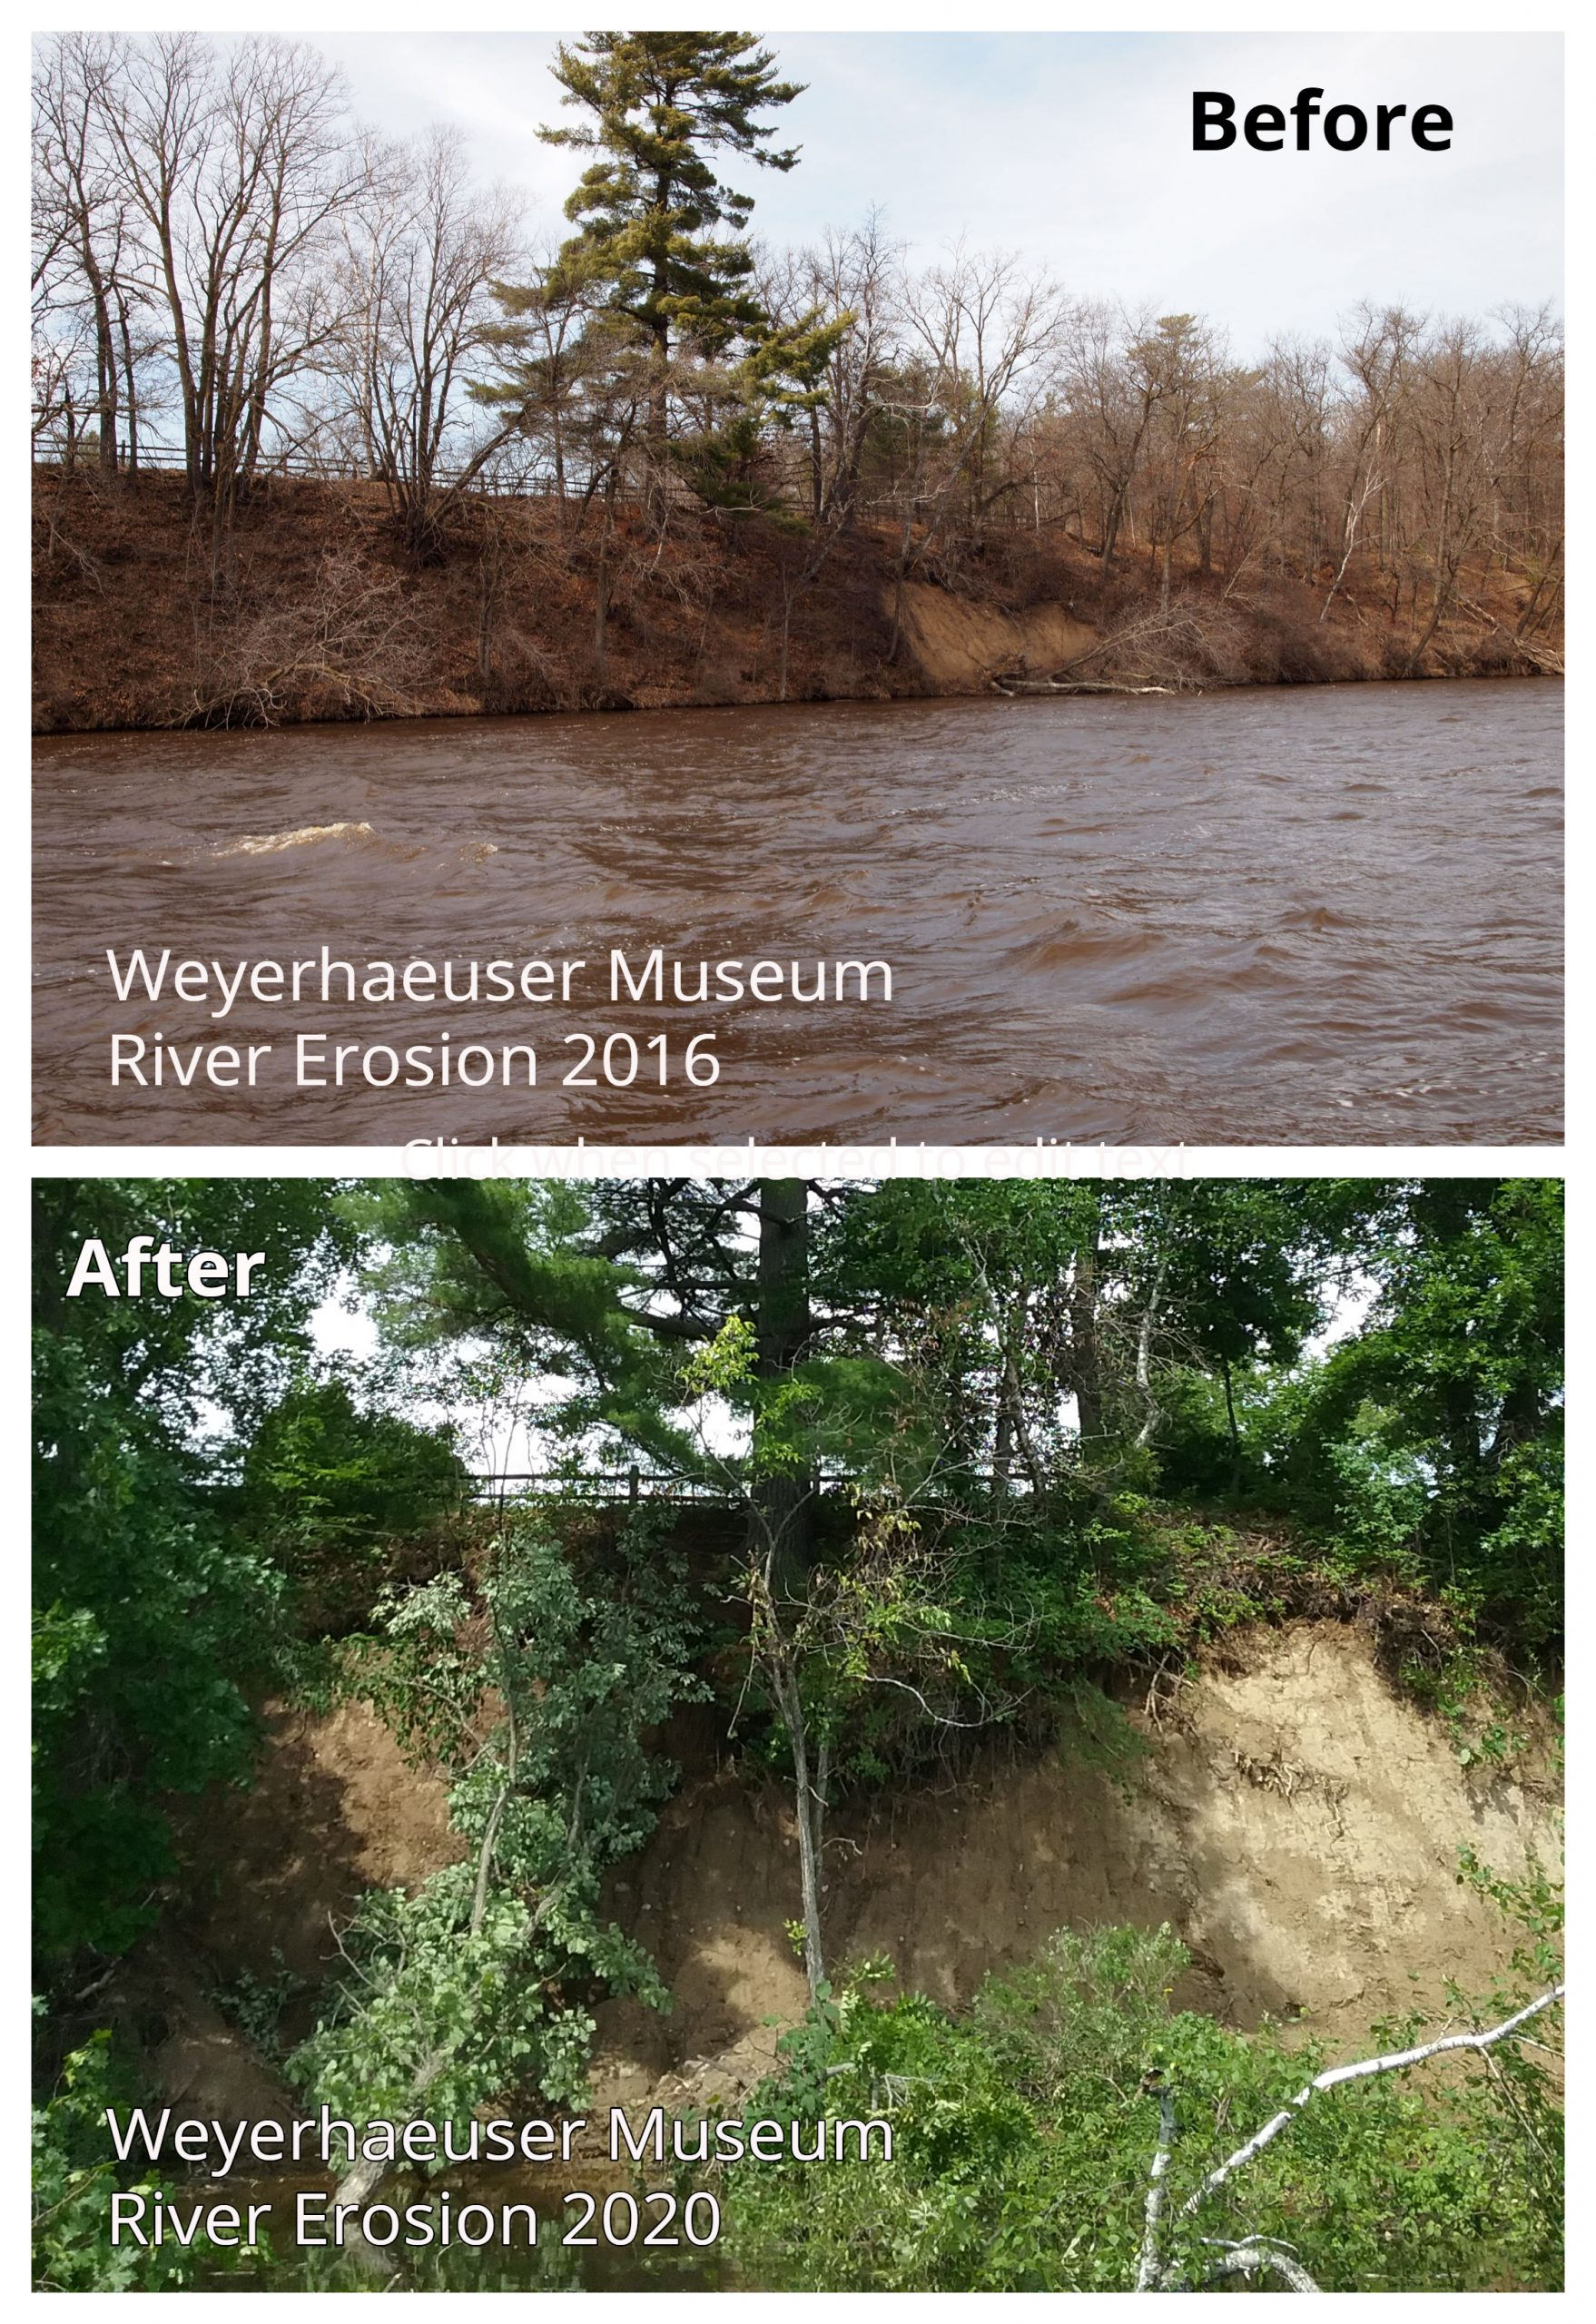 Top photo shows erosion on the riverbank beneath the Big Pine by the Weyerhaeuser Museum in 2016. The bottom shows the erosion after the June 30, 2020, massive rain event.